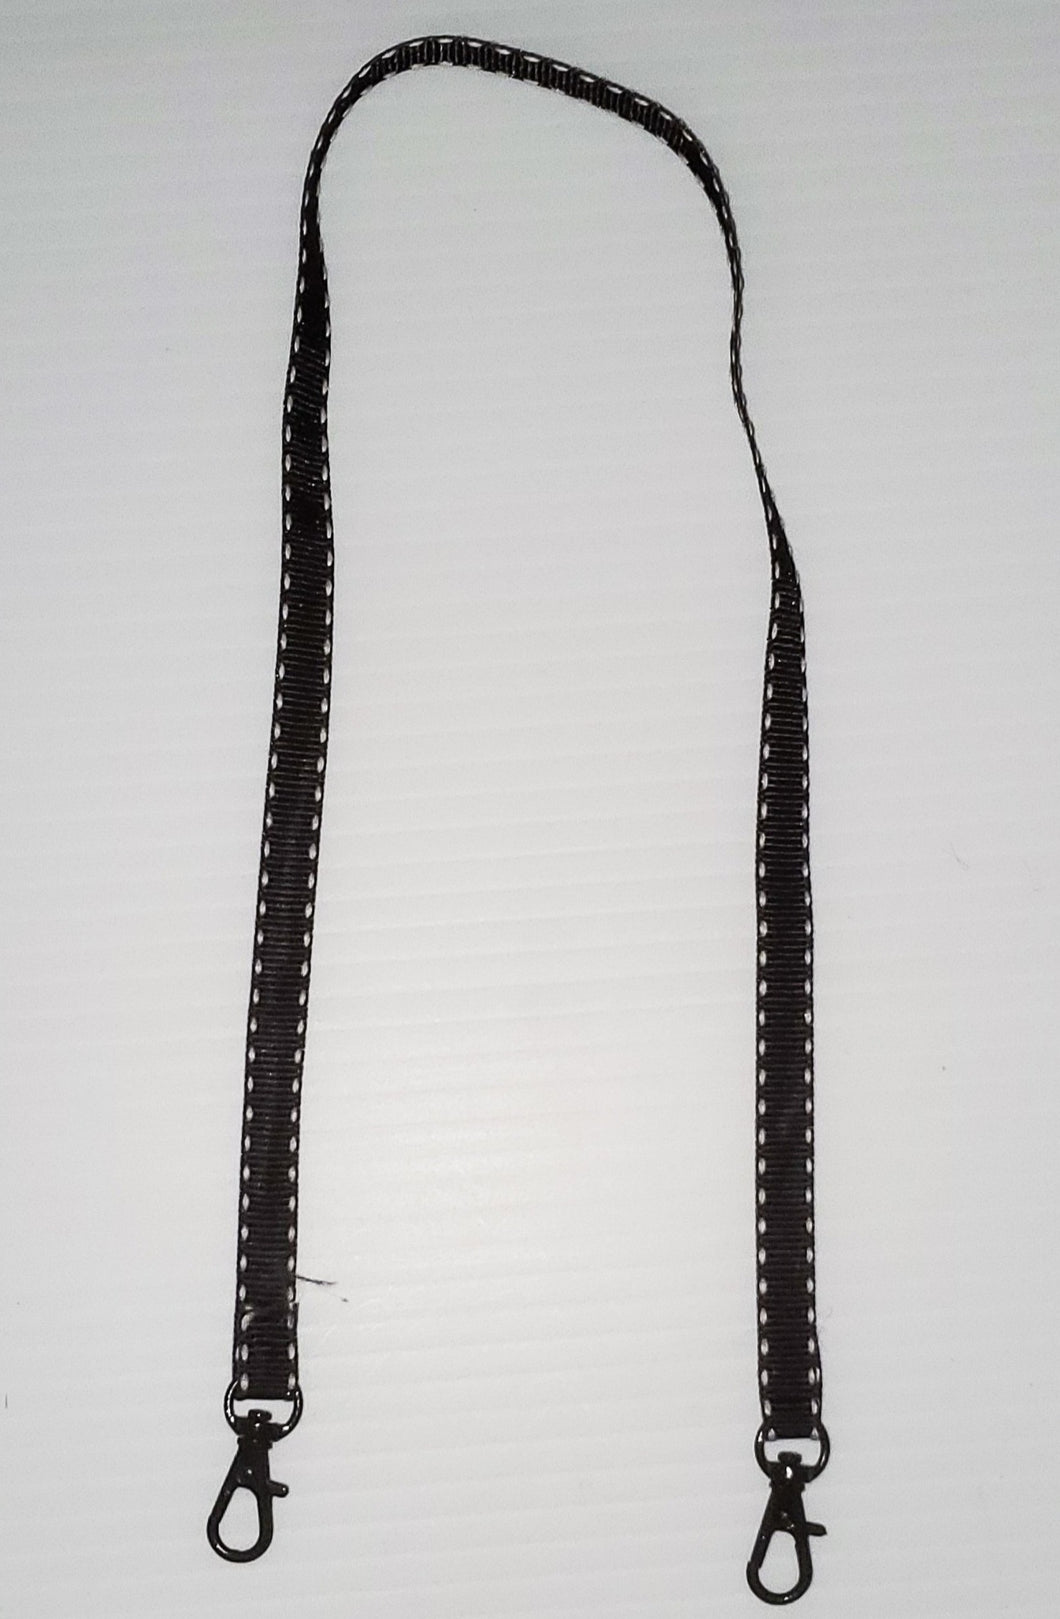 Black Ribbon with White Stitch Mask Hanger with Clips on The End To hold Your Mask